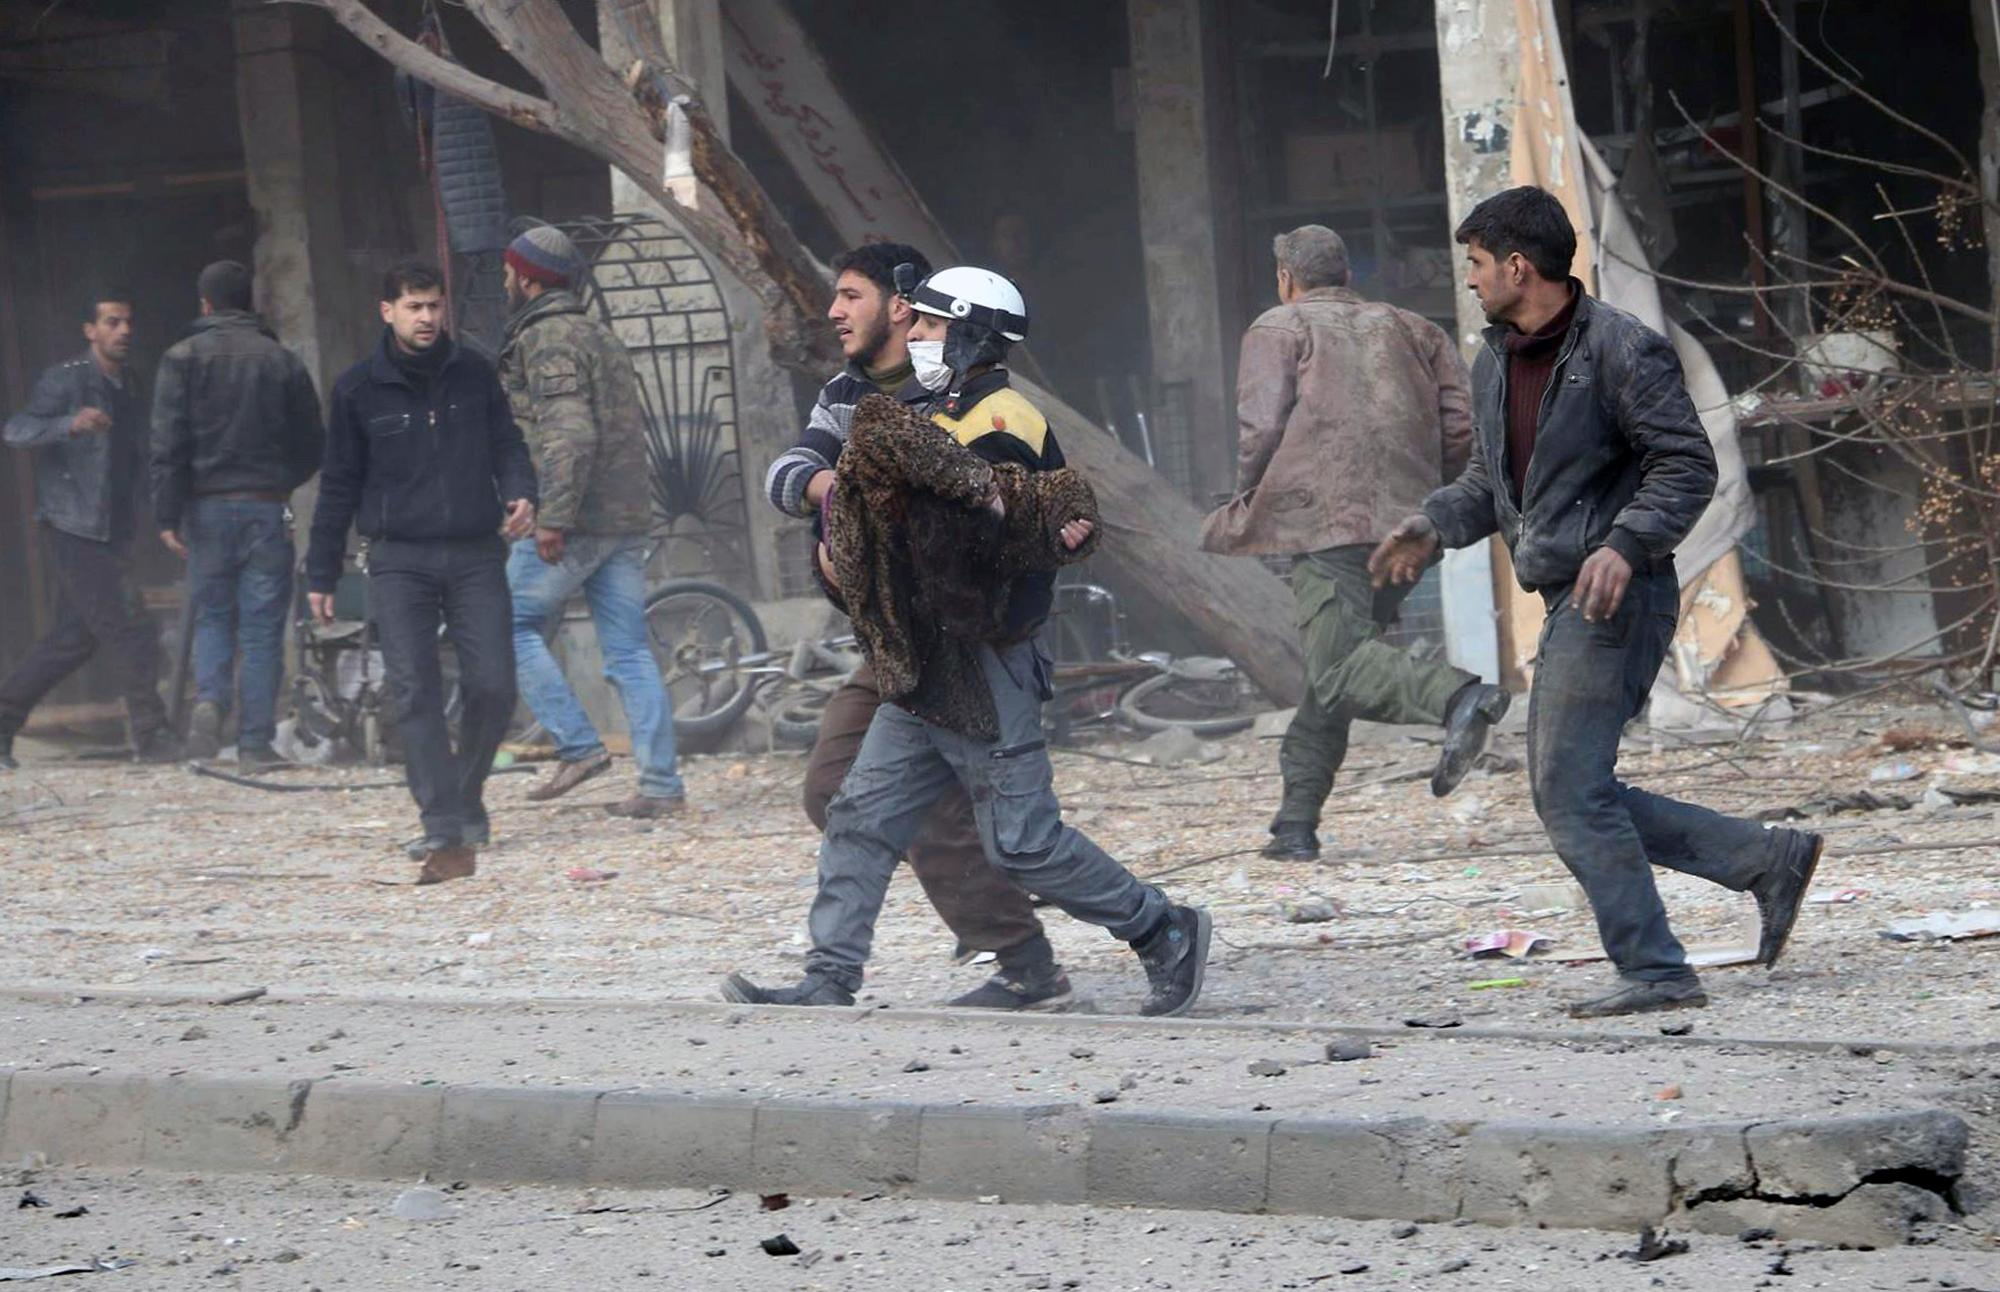 This photo provided by the Syrian Civil Defense White Helmets, which has been authenticated based on its contents and other AP reporting, shows a civil defense worker carrying a victim after airstrikes hit a rebel-held suburb near Damascus, Syria, Thursday, Feb. 8, 2018. Syrian rescue workers and activists say the death toll from ongoing government strikes on the opposition-held region near the capital Damascus has risen to at least 35. (Syrian Civil Defense White Helmets via AP)